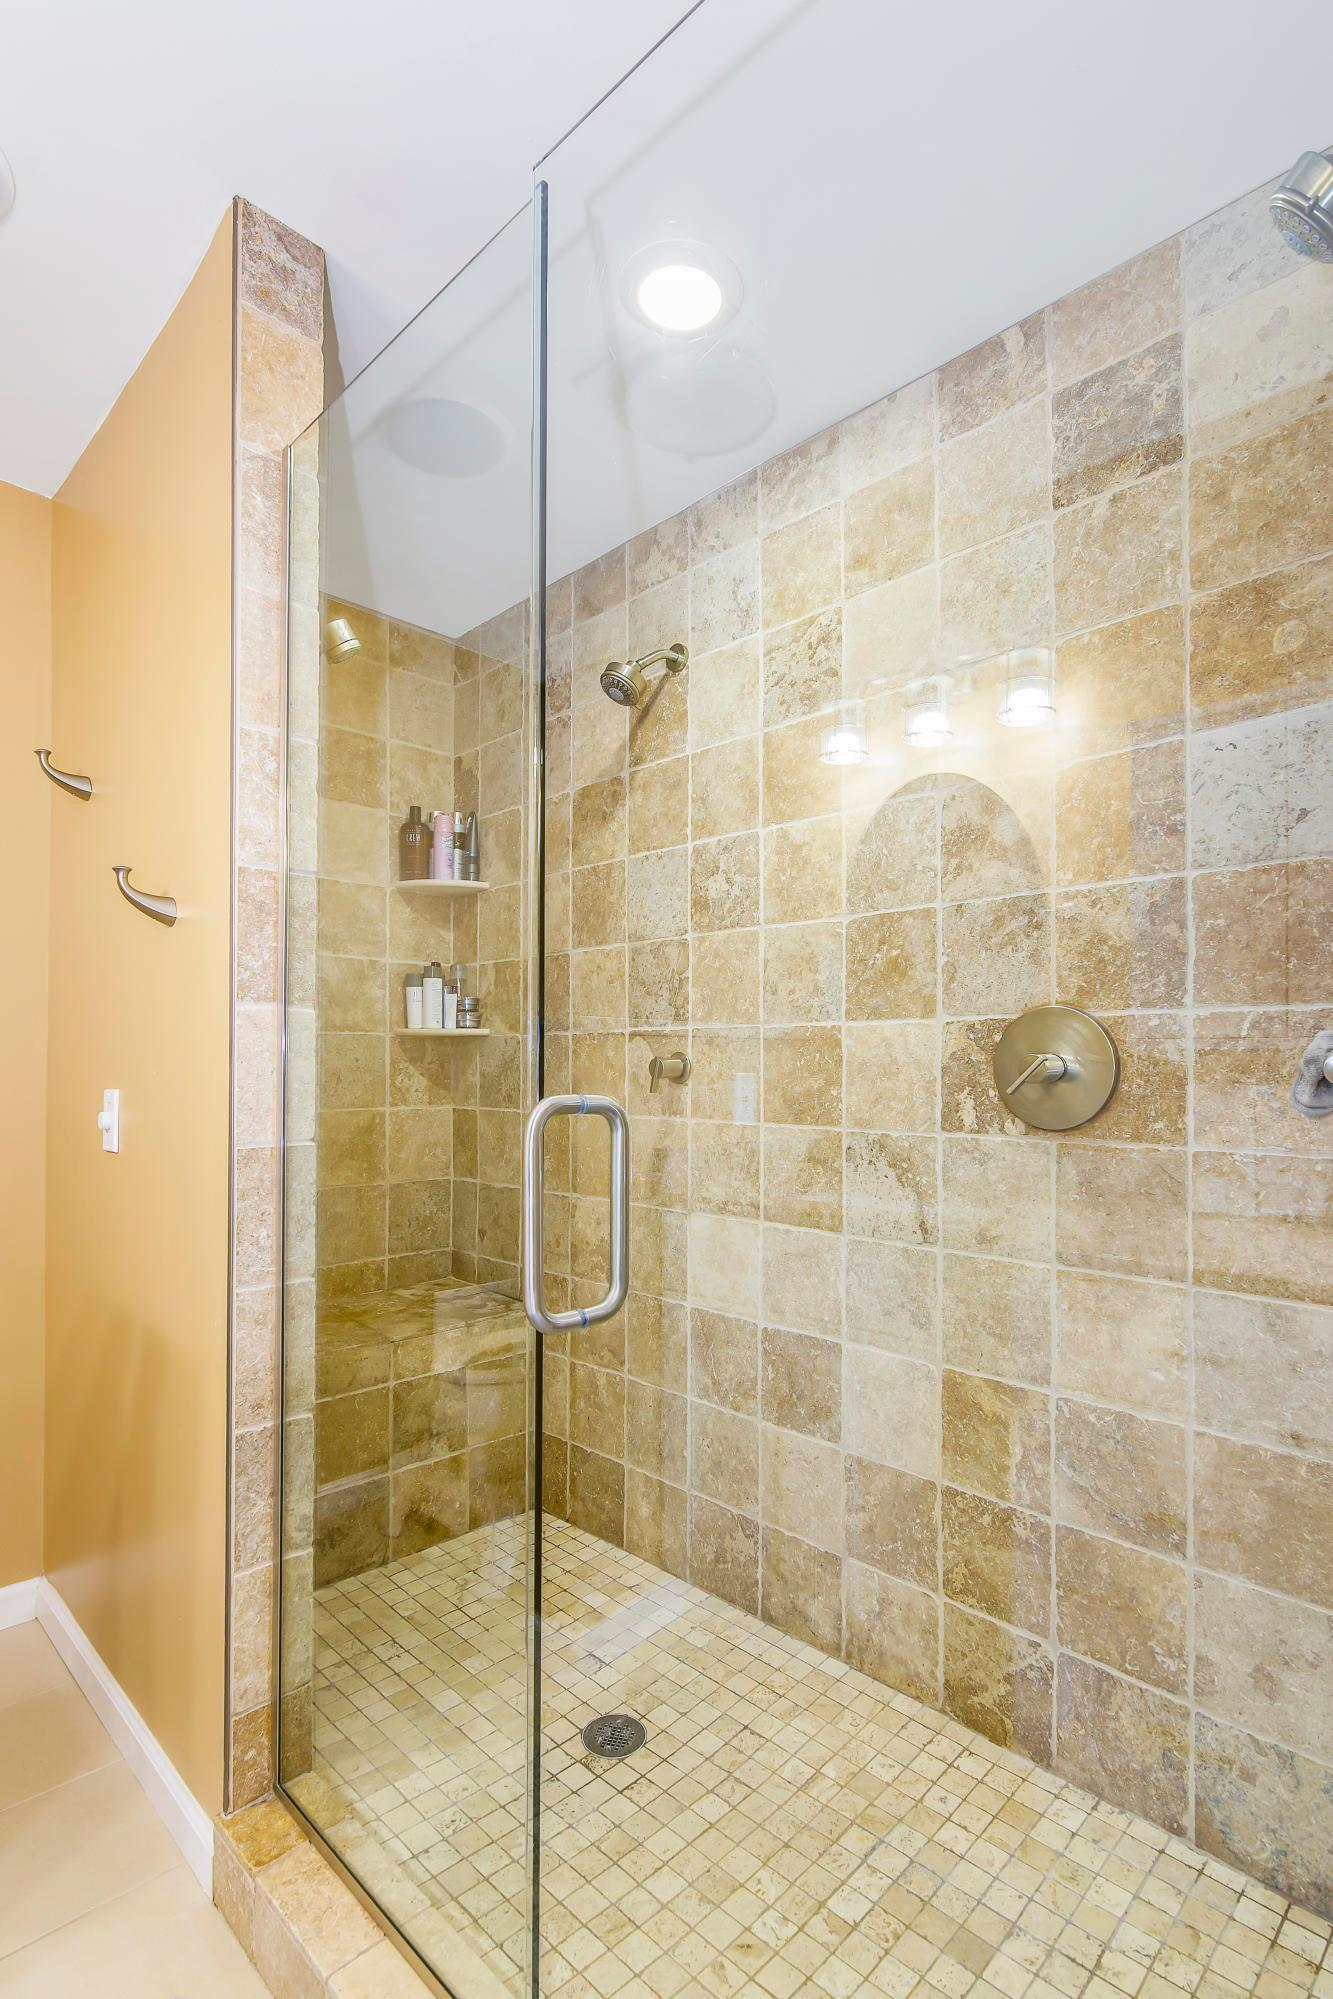 1267 Worthington Heights Boulevard, Columbus, Ohio 43235, 3 Bedrooms Bedrooms, ,3 BathroomsBathrooms,Residential,For Sale,Worthington Heights,220043850